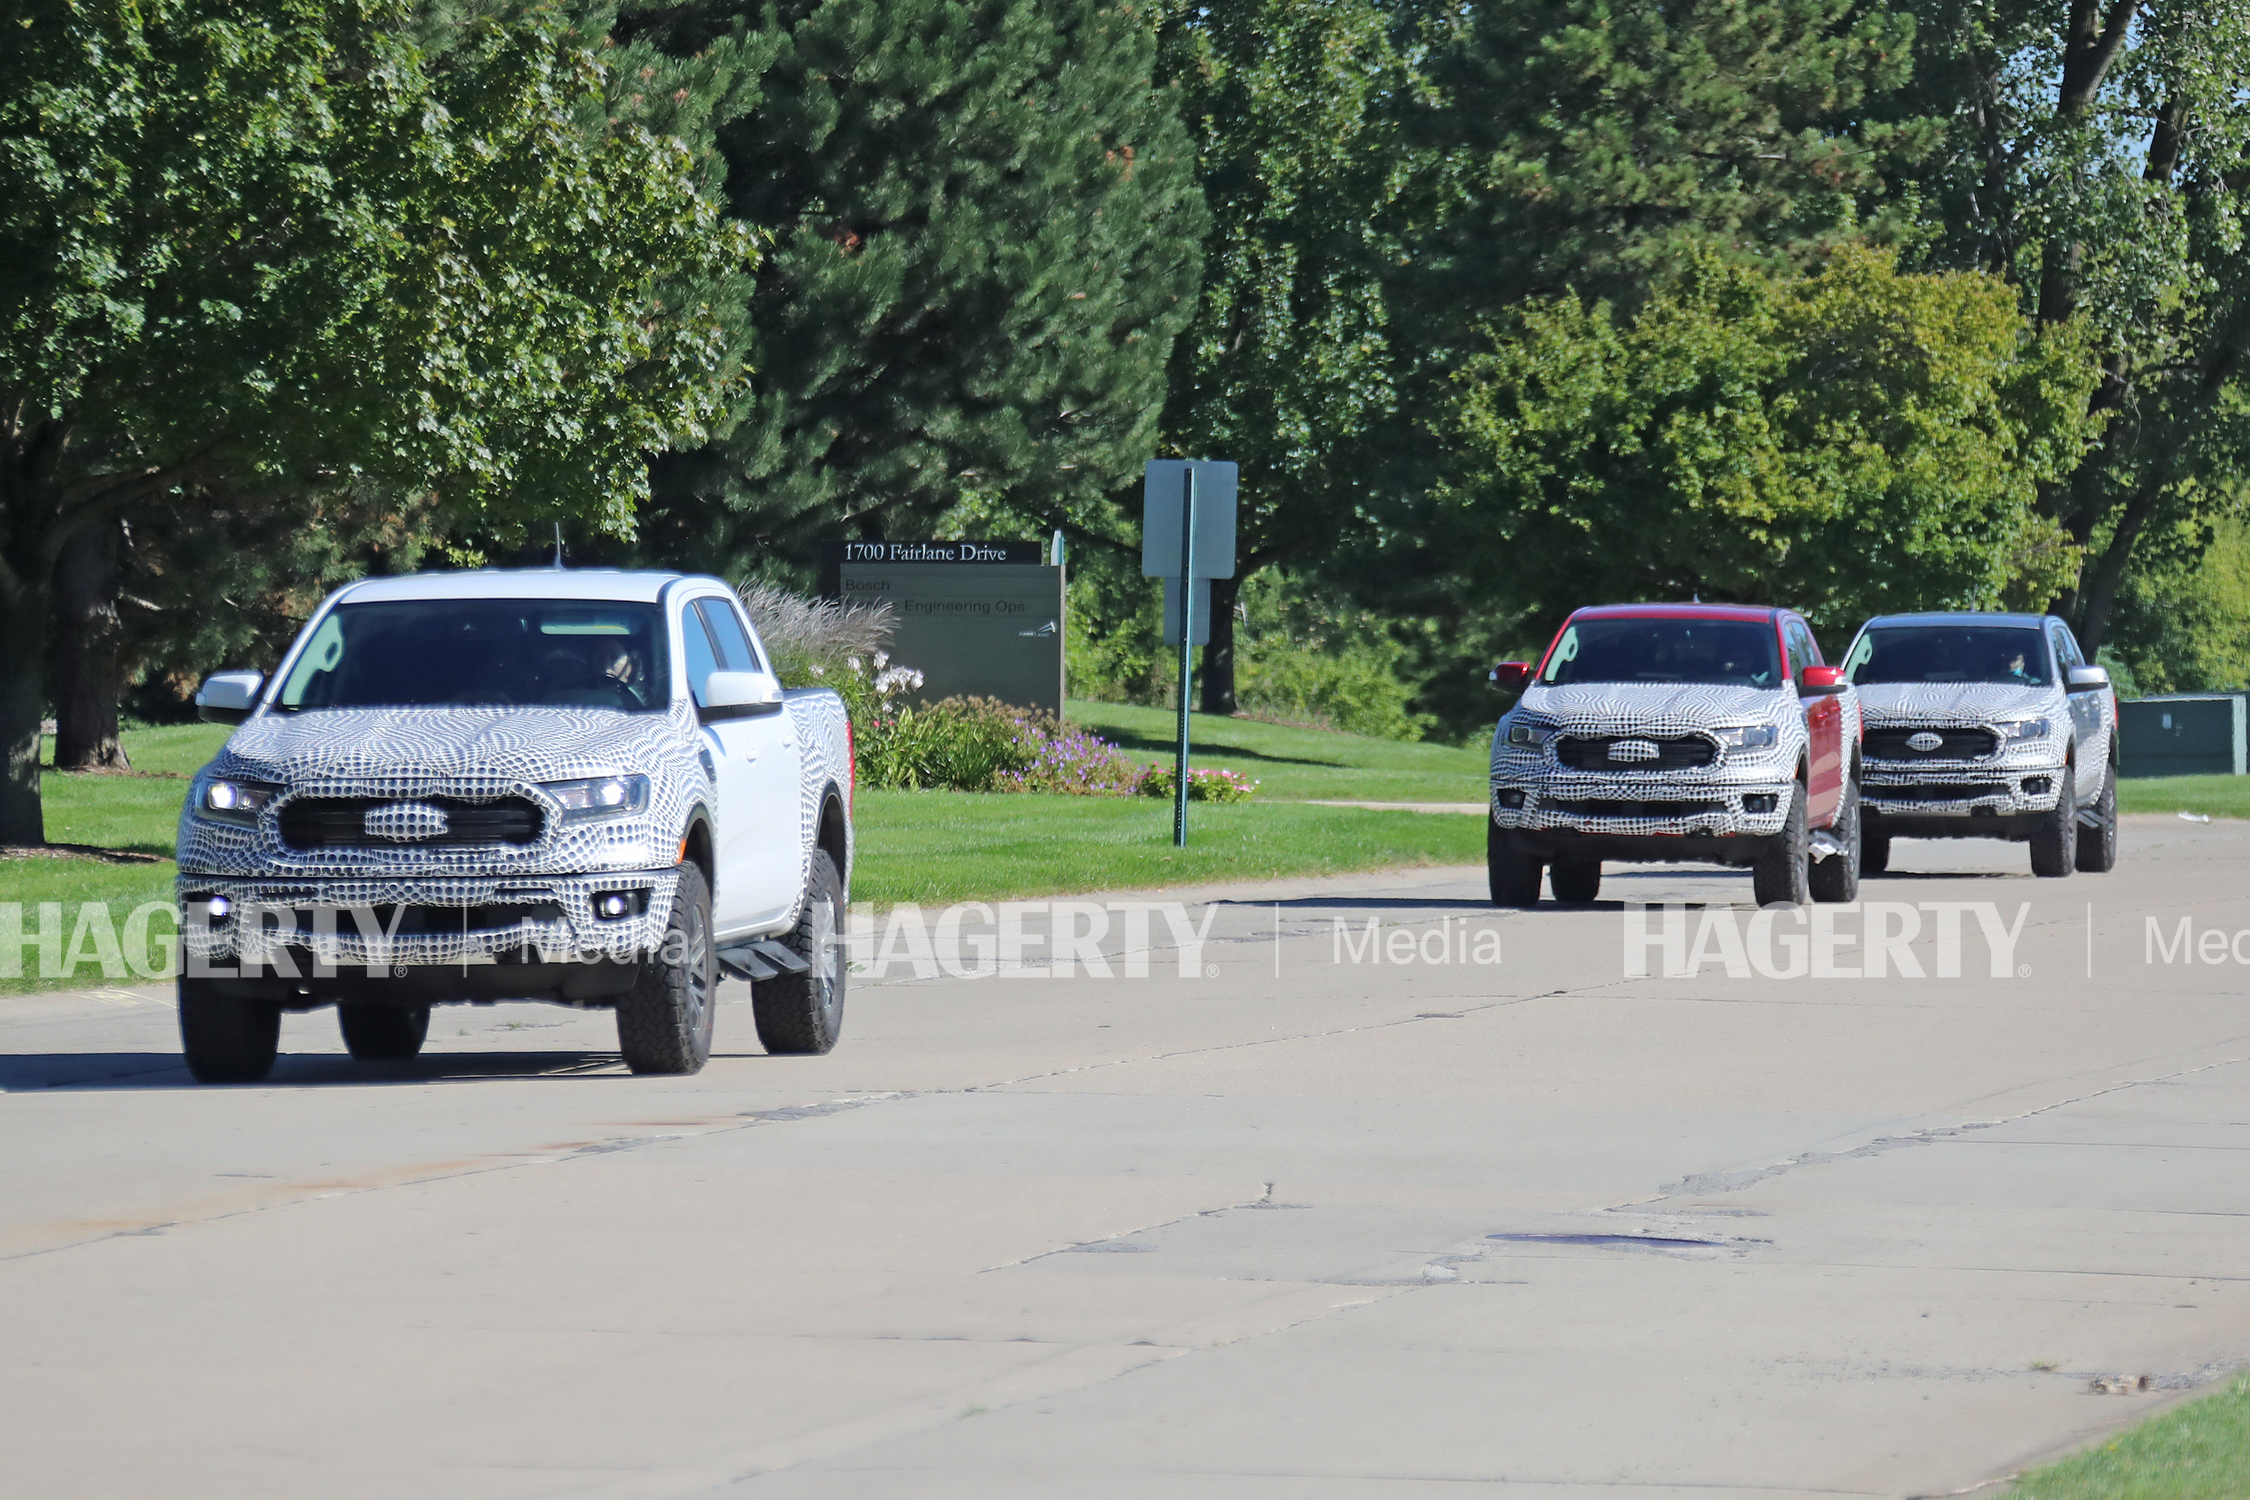 ford ranger tremor spy photo three truck fronts